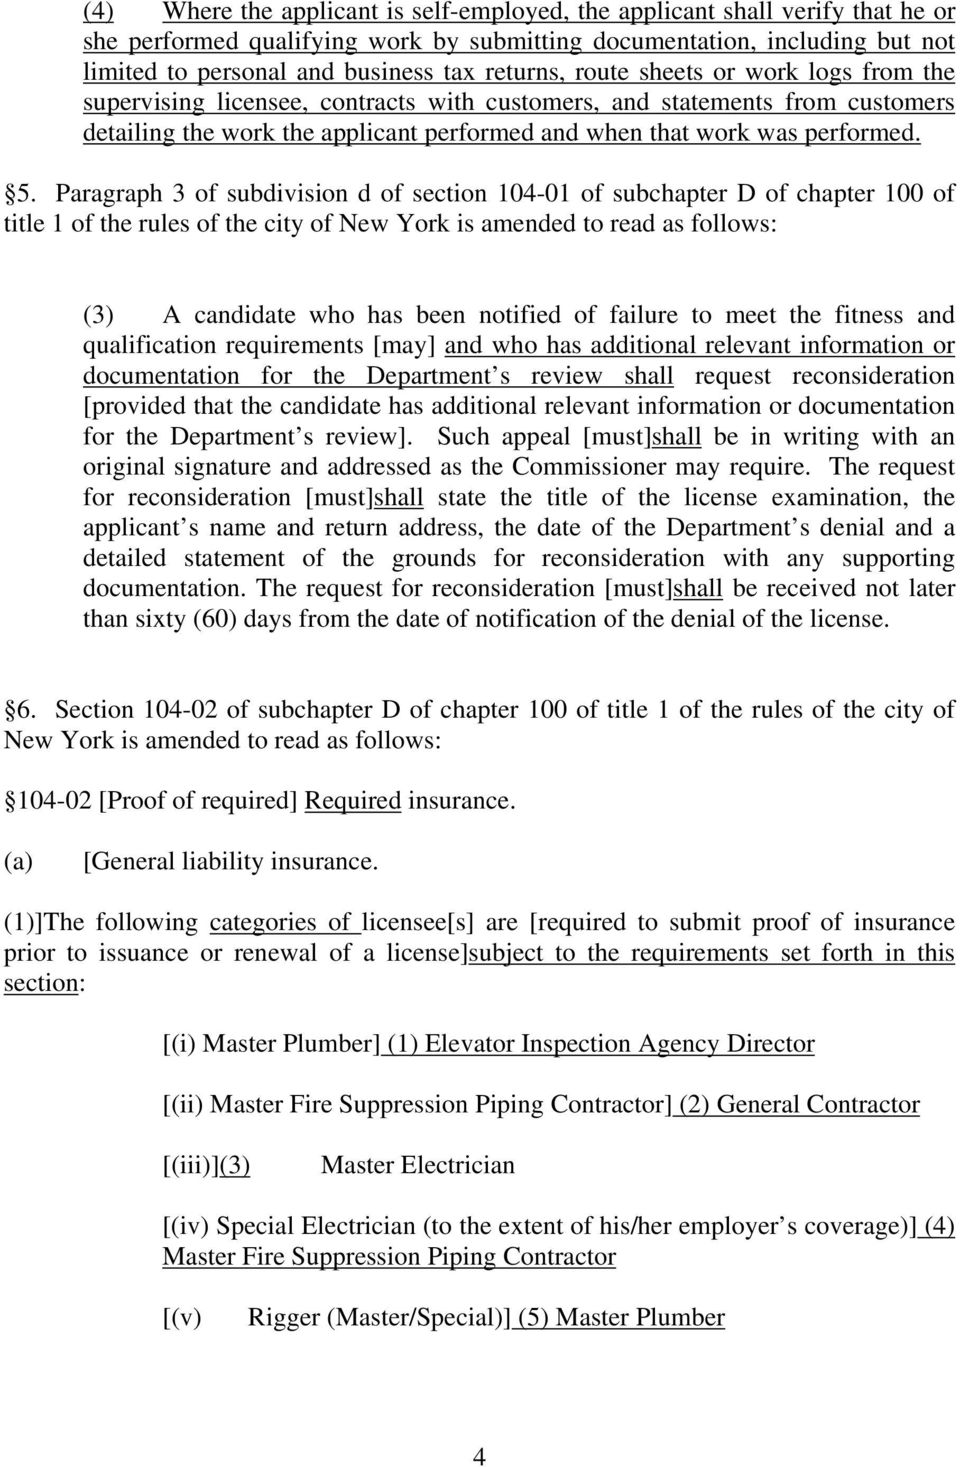 5. Paragraph 3 of subdivision d of section 104-01 of subchapter D of chapter 100 of title 1 of the rules of the city of New York is amended to read as follows: (3) A candidate who has been notified